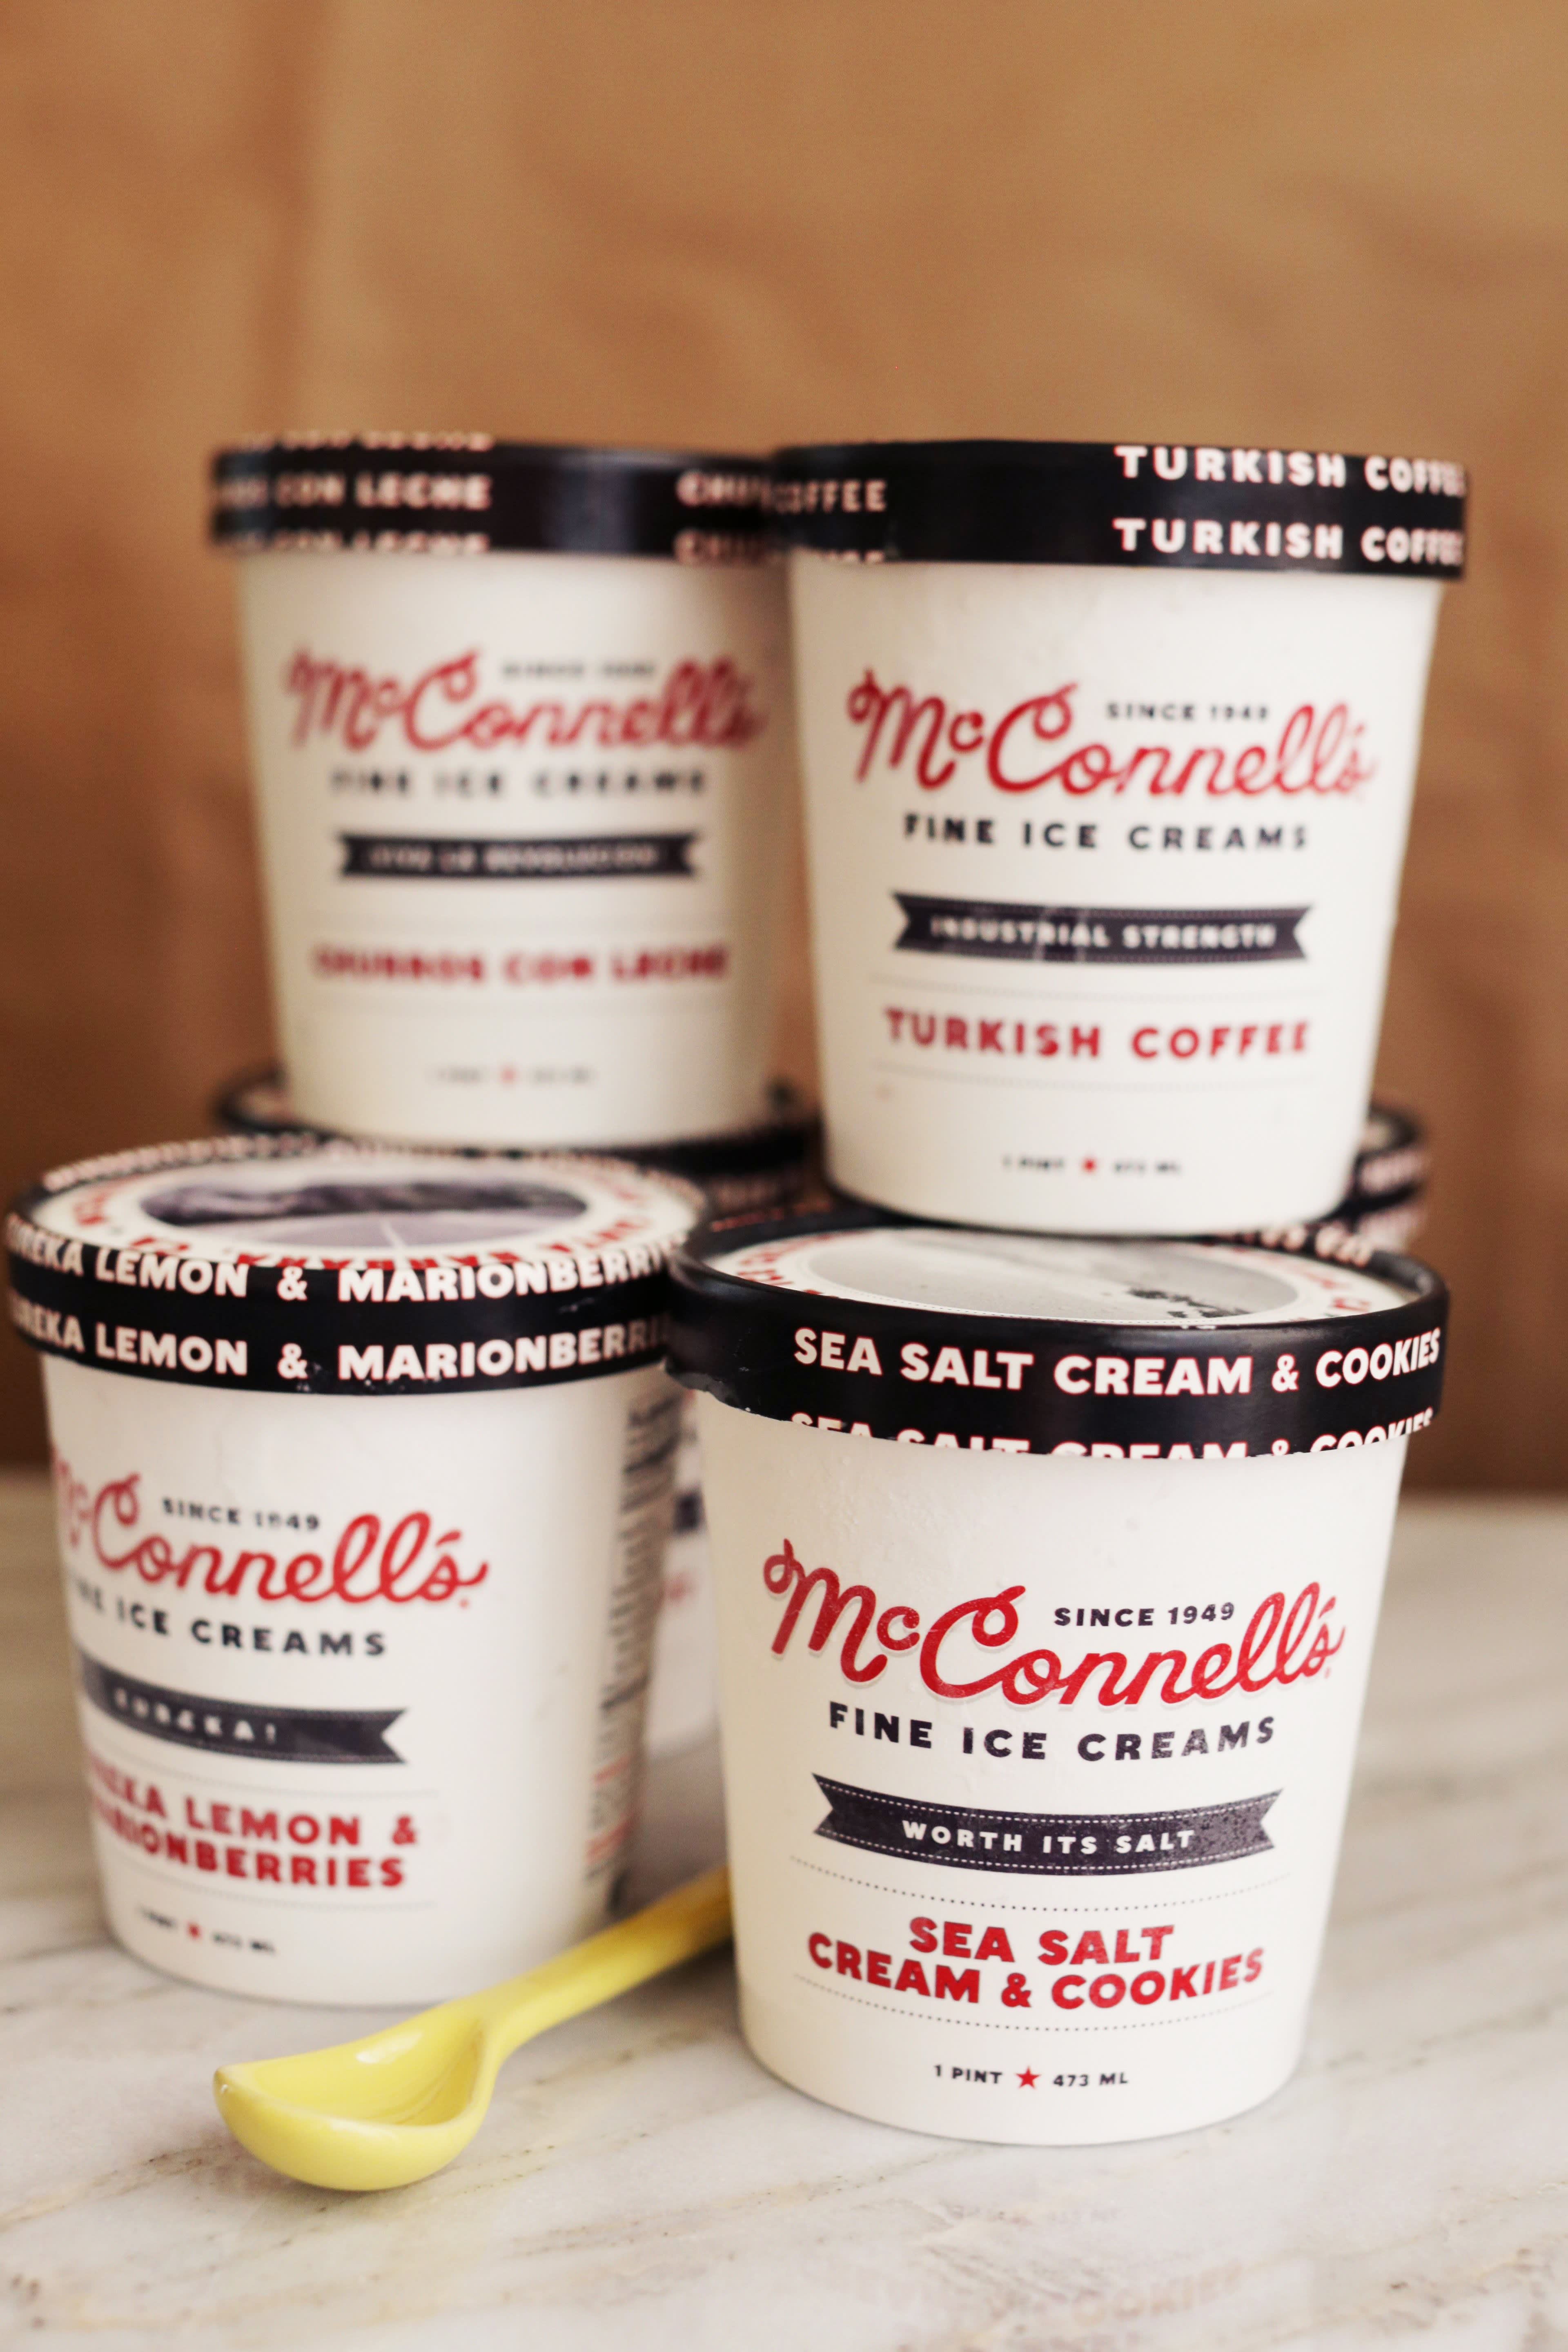 McConnell's ice cream pints